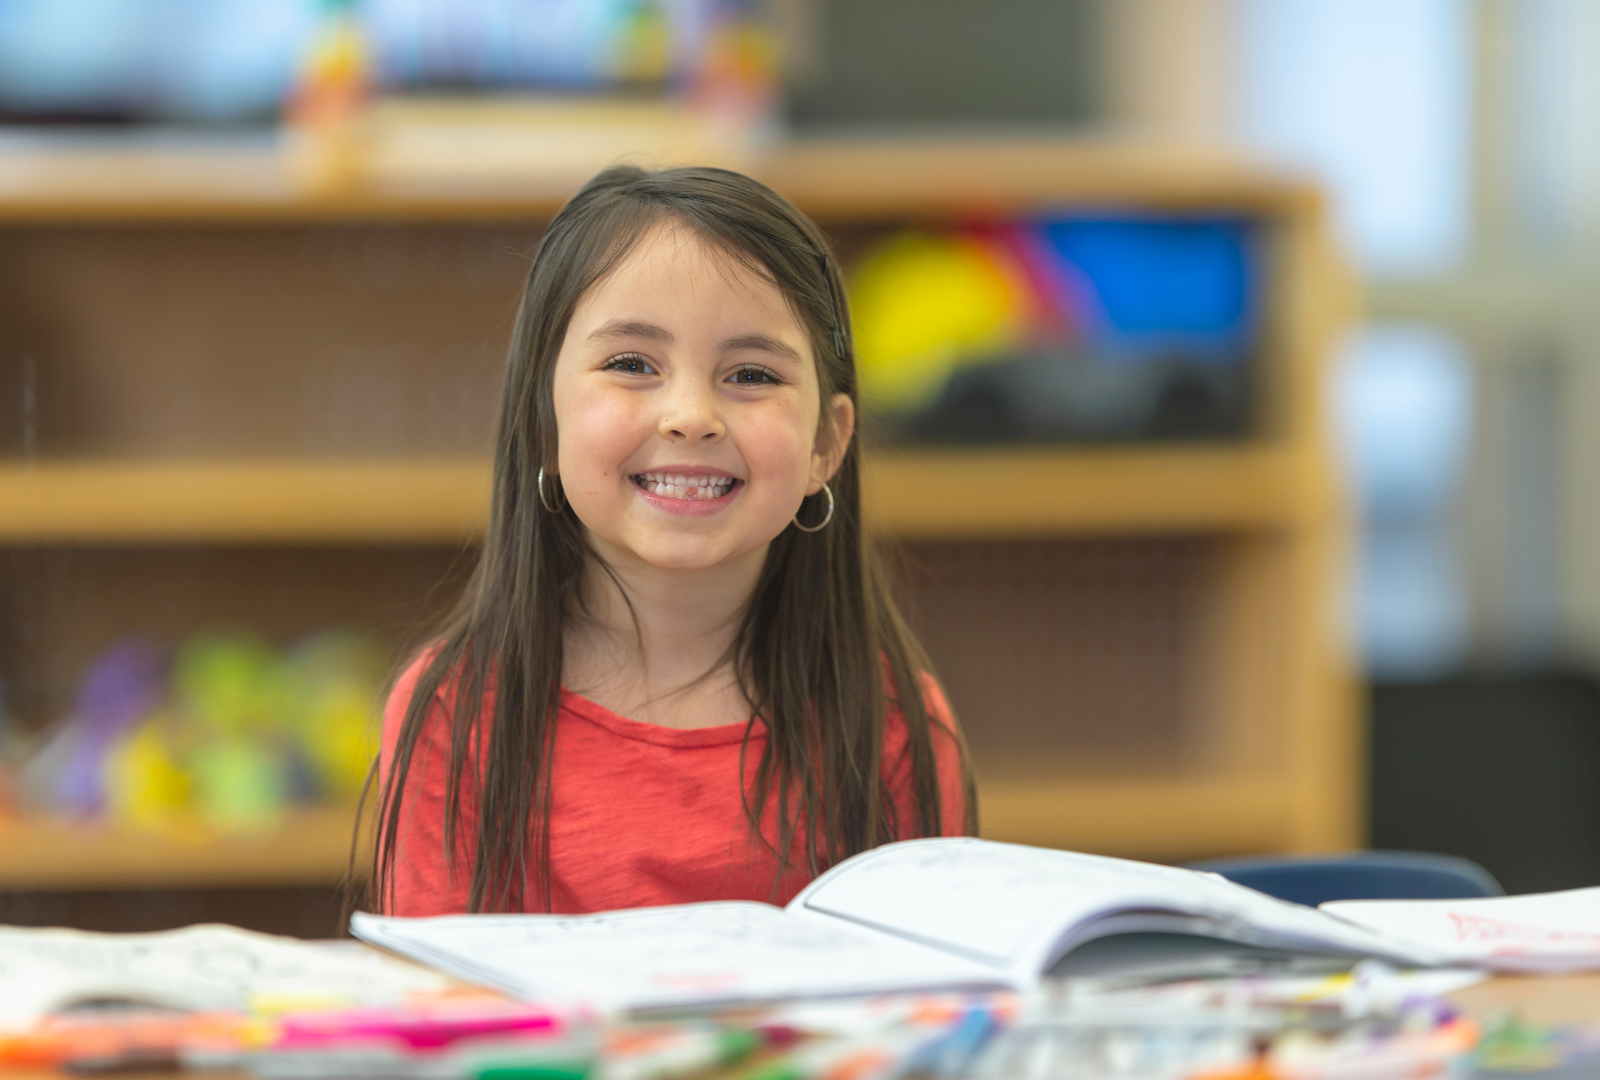 girl smiling in classroom with book in front of her